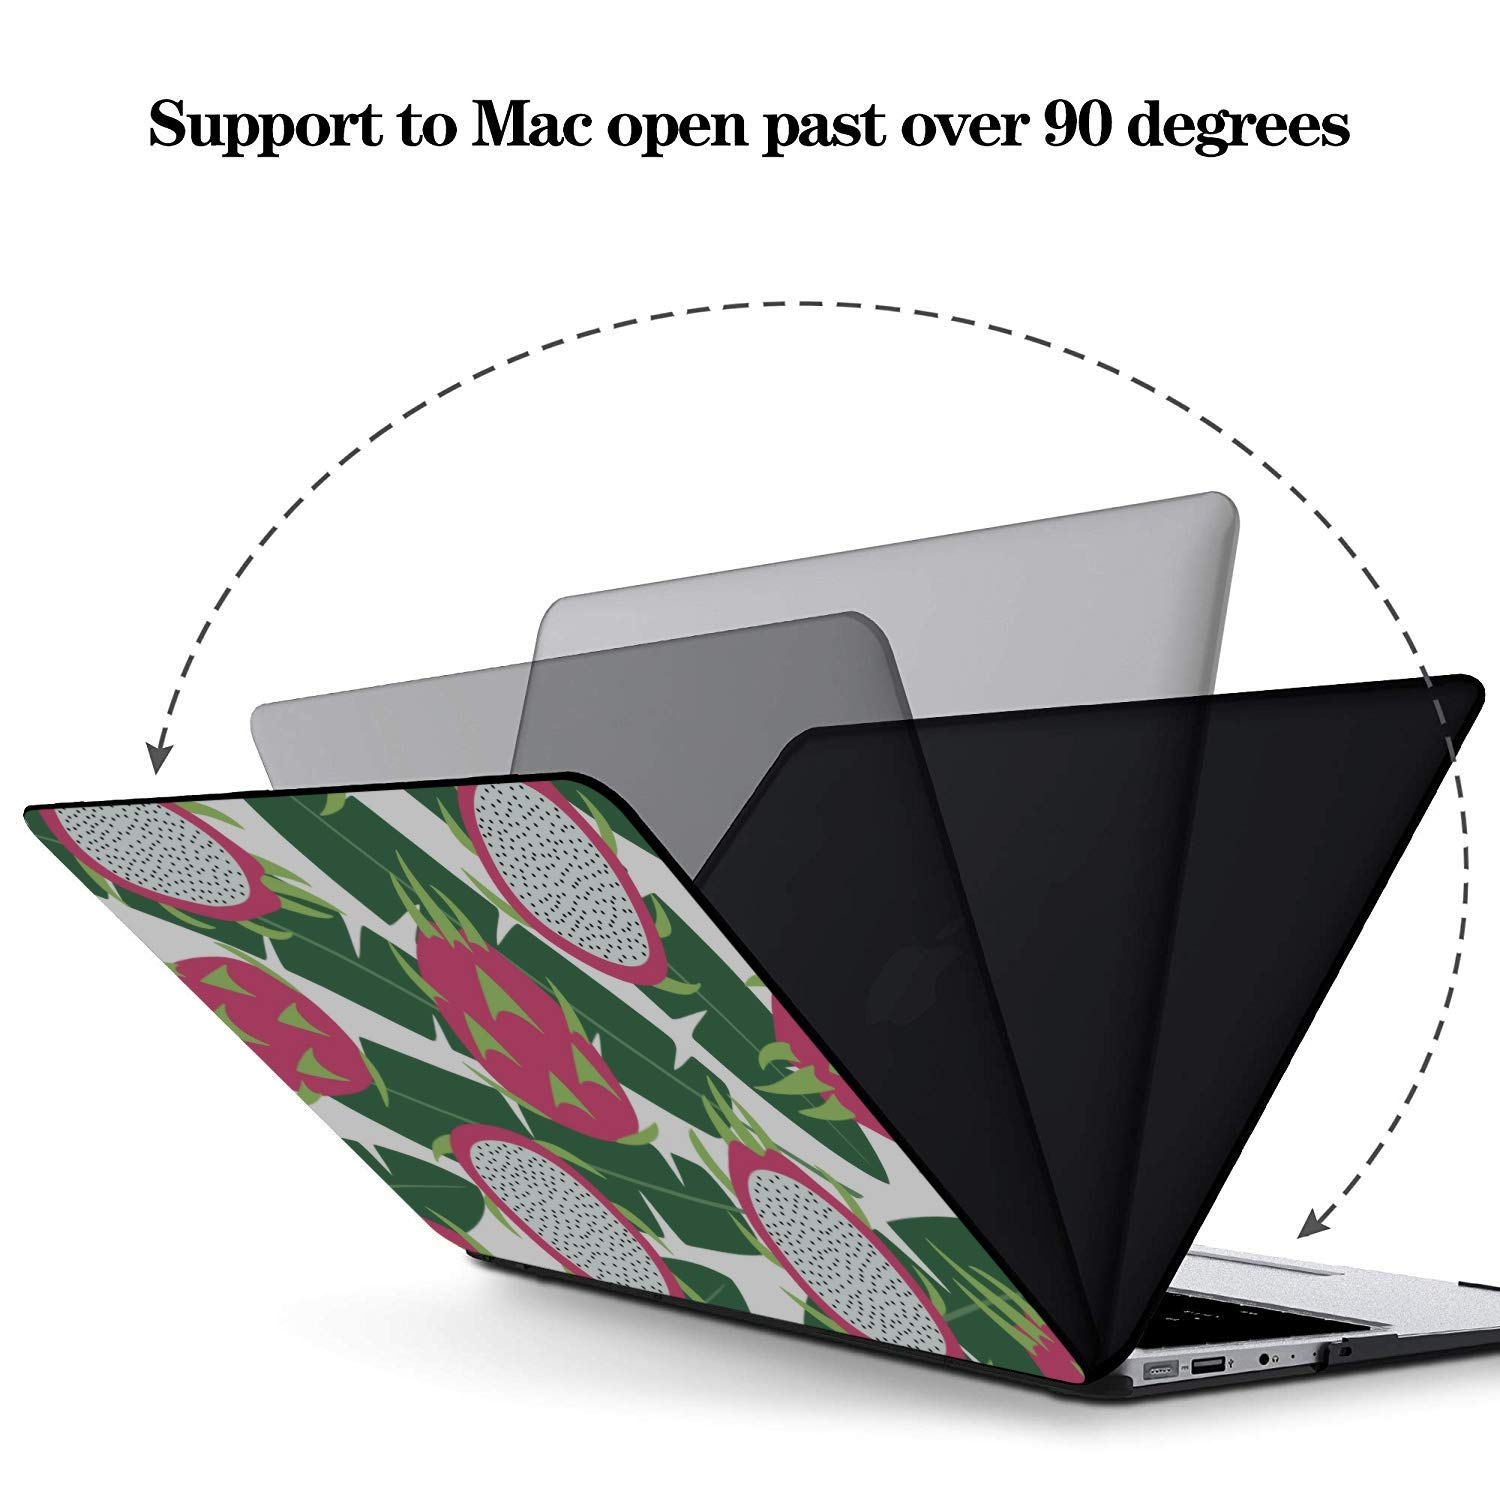 MacBook Pro 15 Case Sweet Art Tropical Fruit Dragon Leaf Plastic Hard Shell Compatible Mac Air 11 Pro 13 15 2018 MacBook Pro Accessories Protection for MacBook 2016-2019 Version